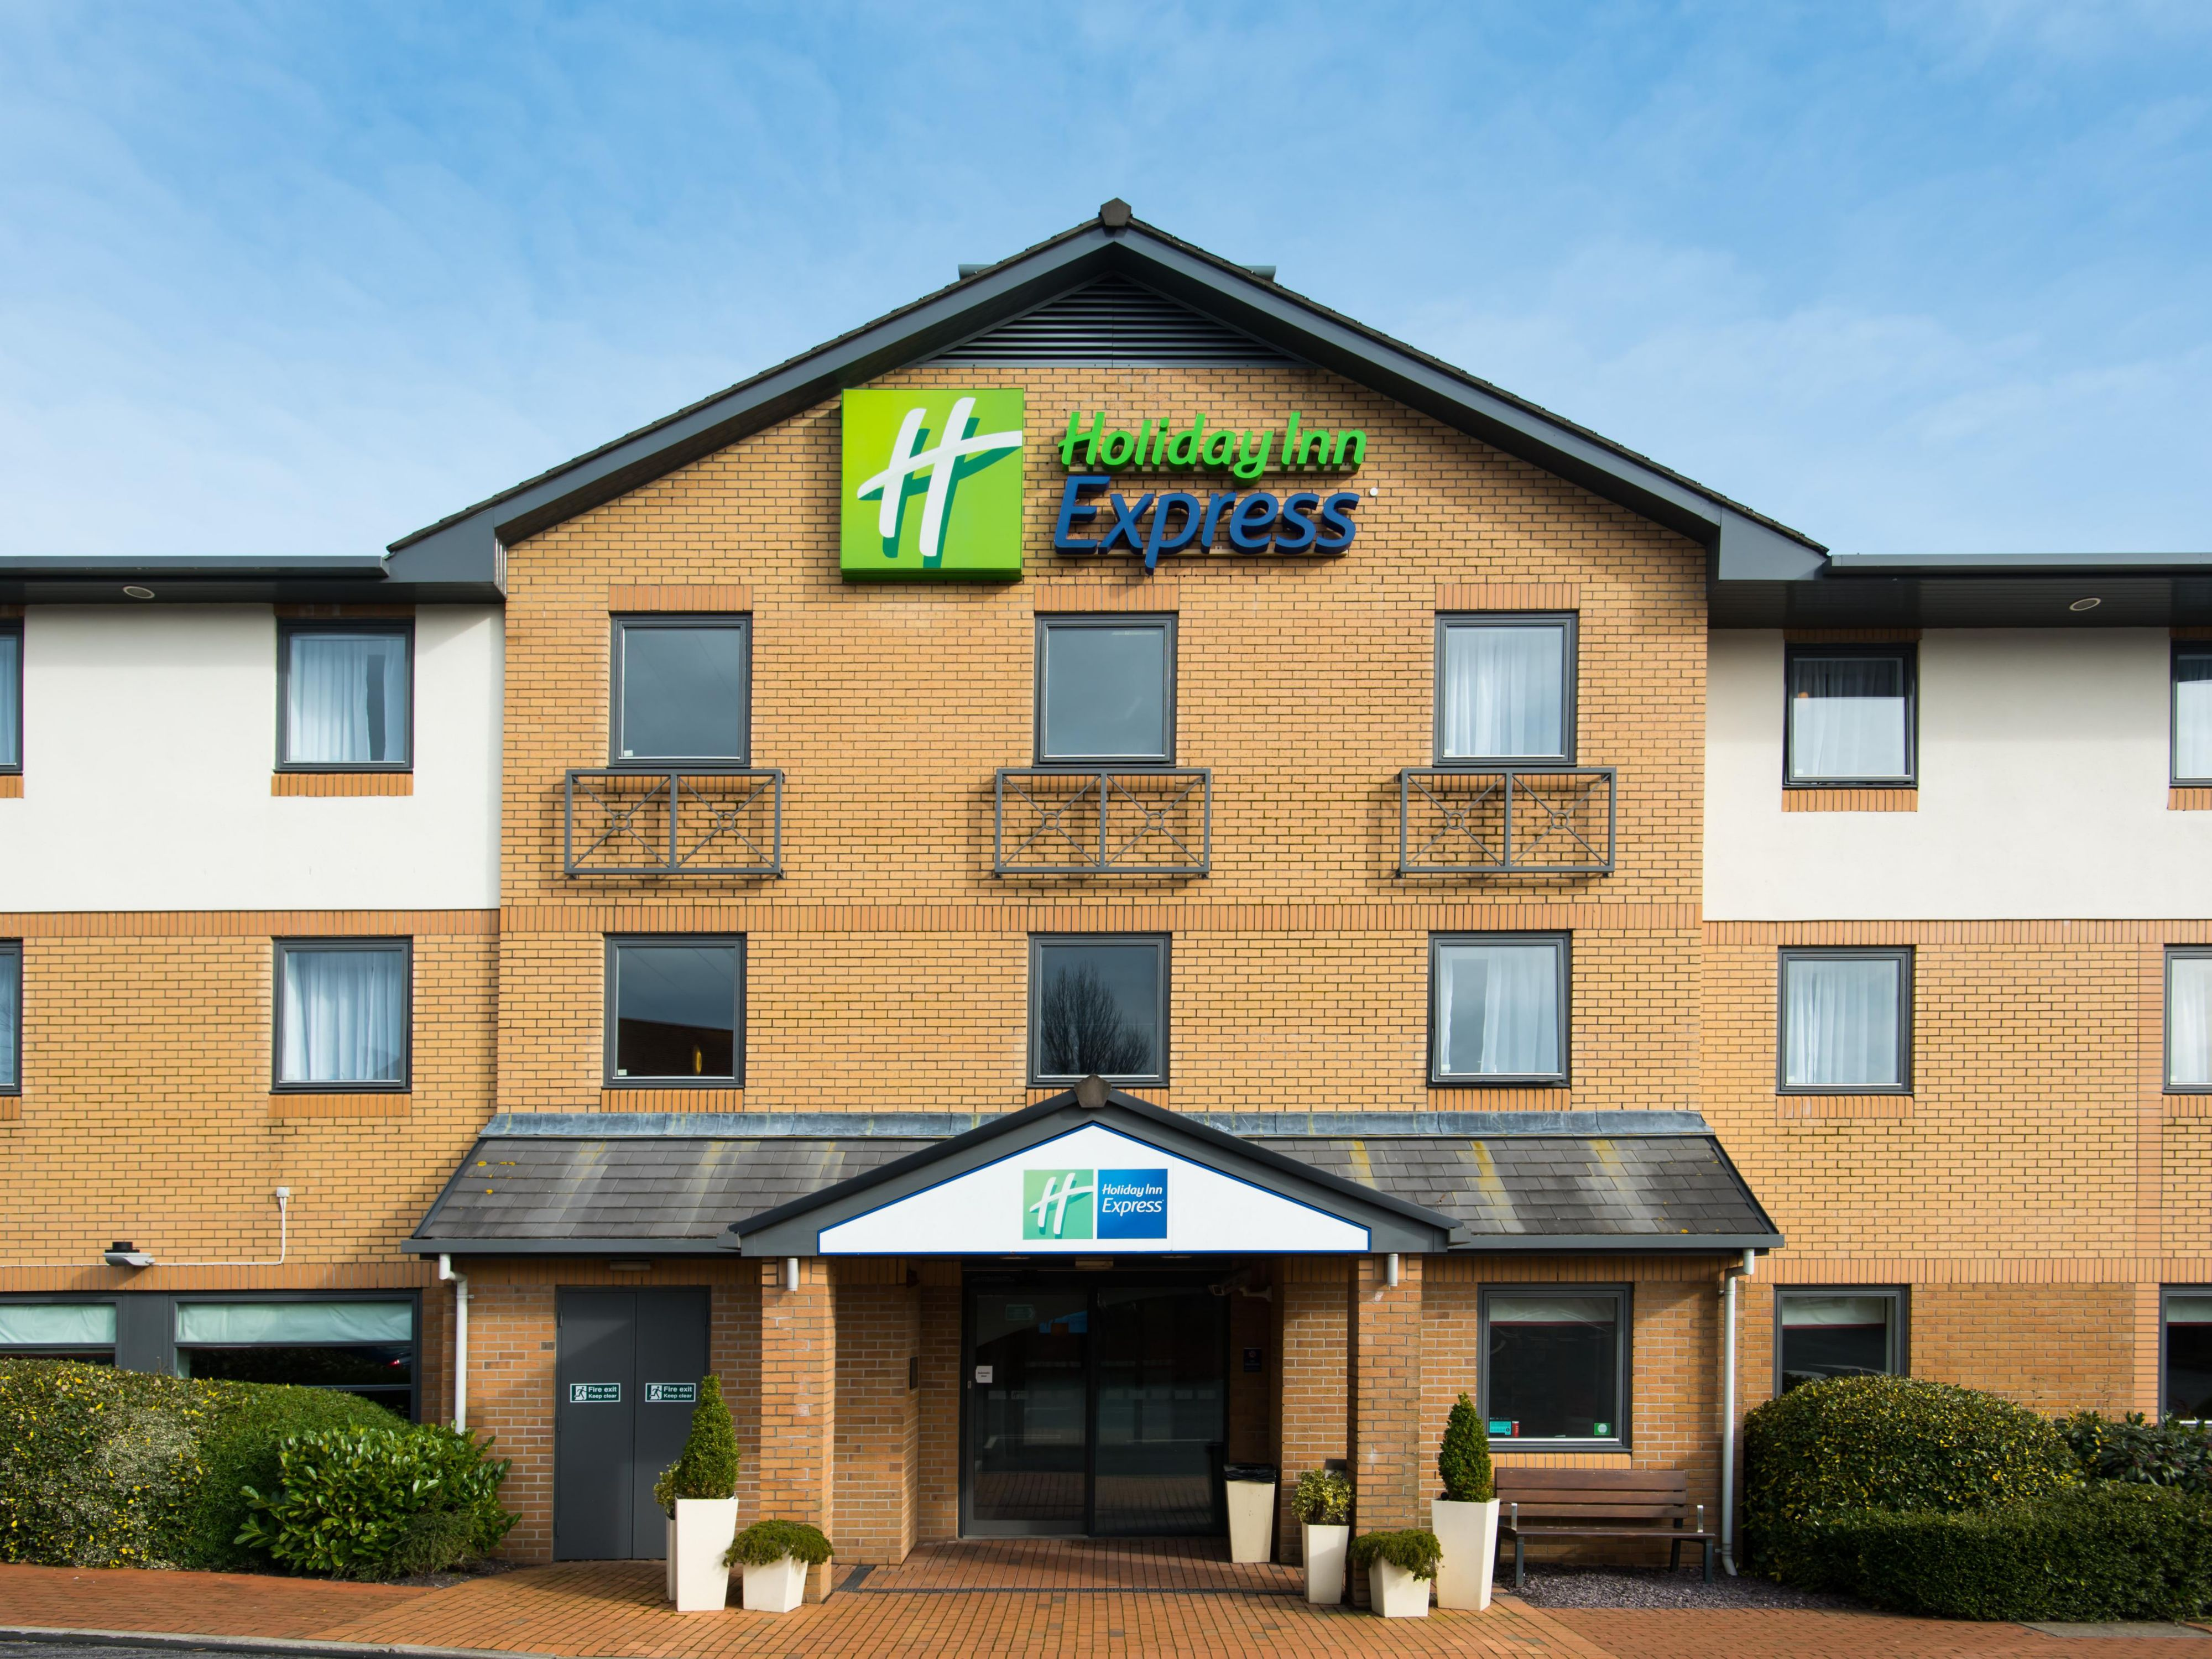 A warm welcome awaits at Holiday Inn Express Swansea - East